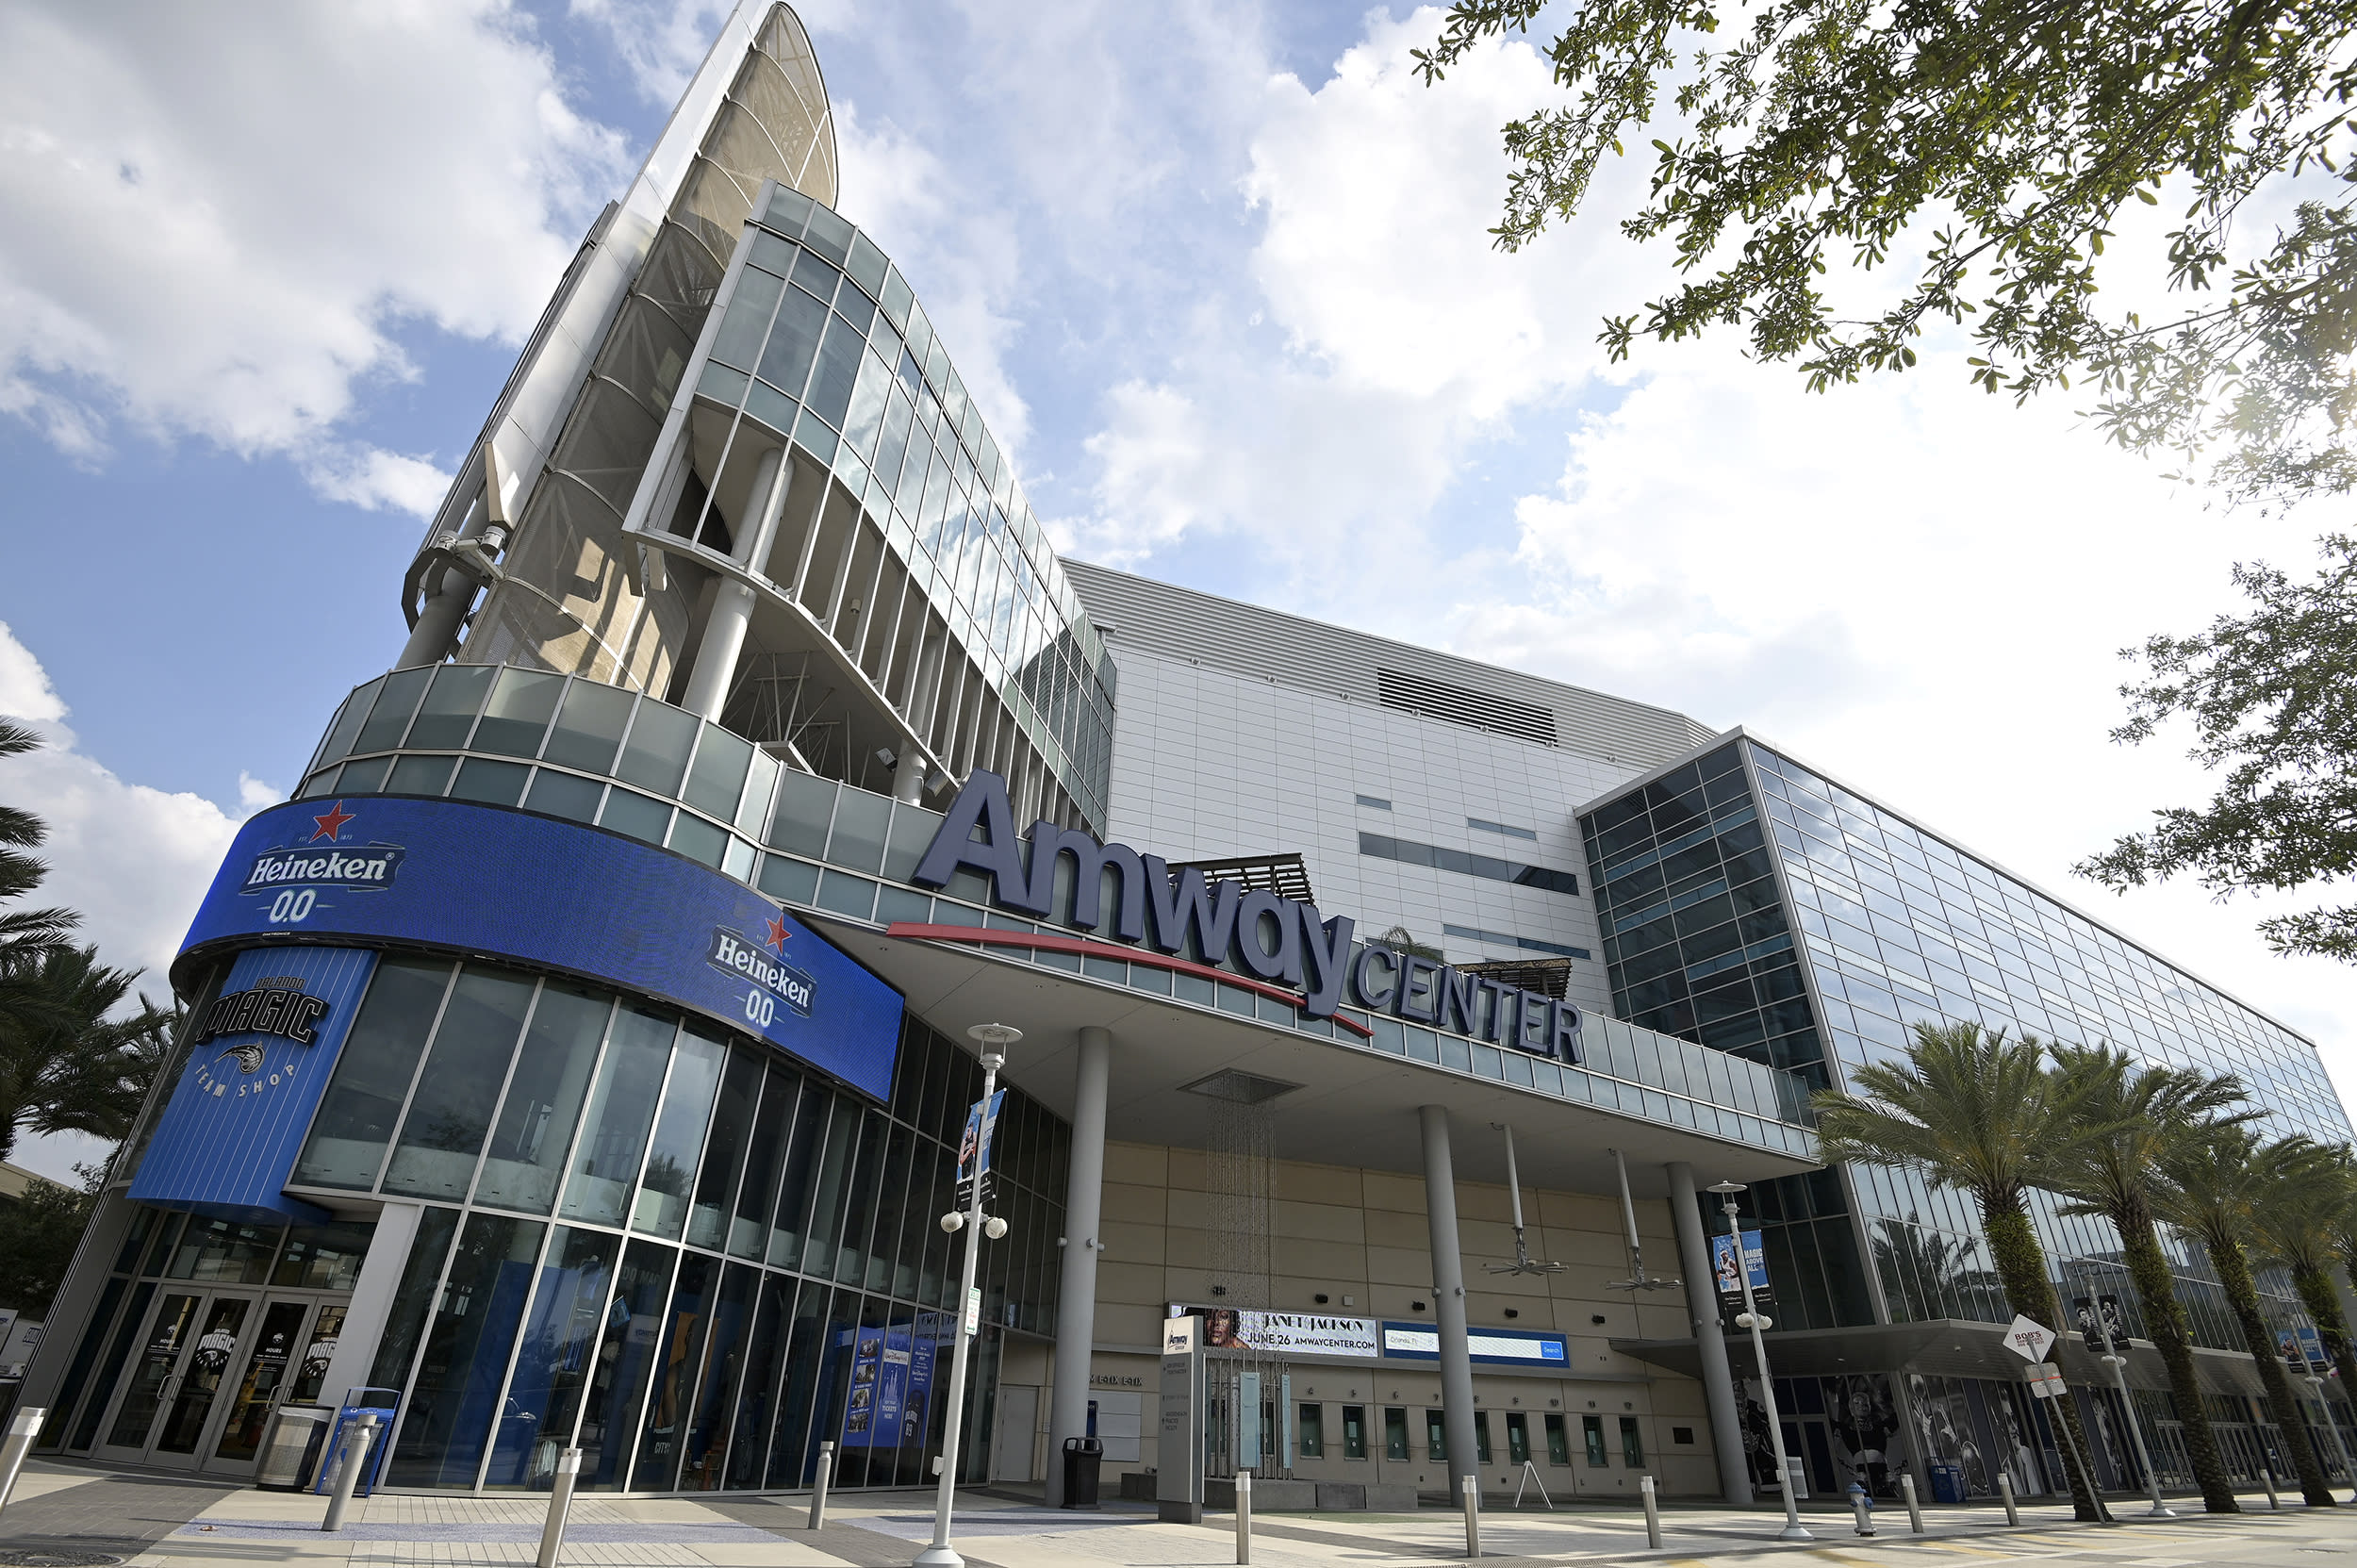 Orlando Magic to open arena to voters, as NBA election push grows